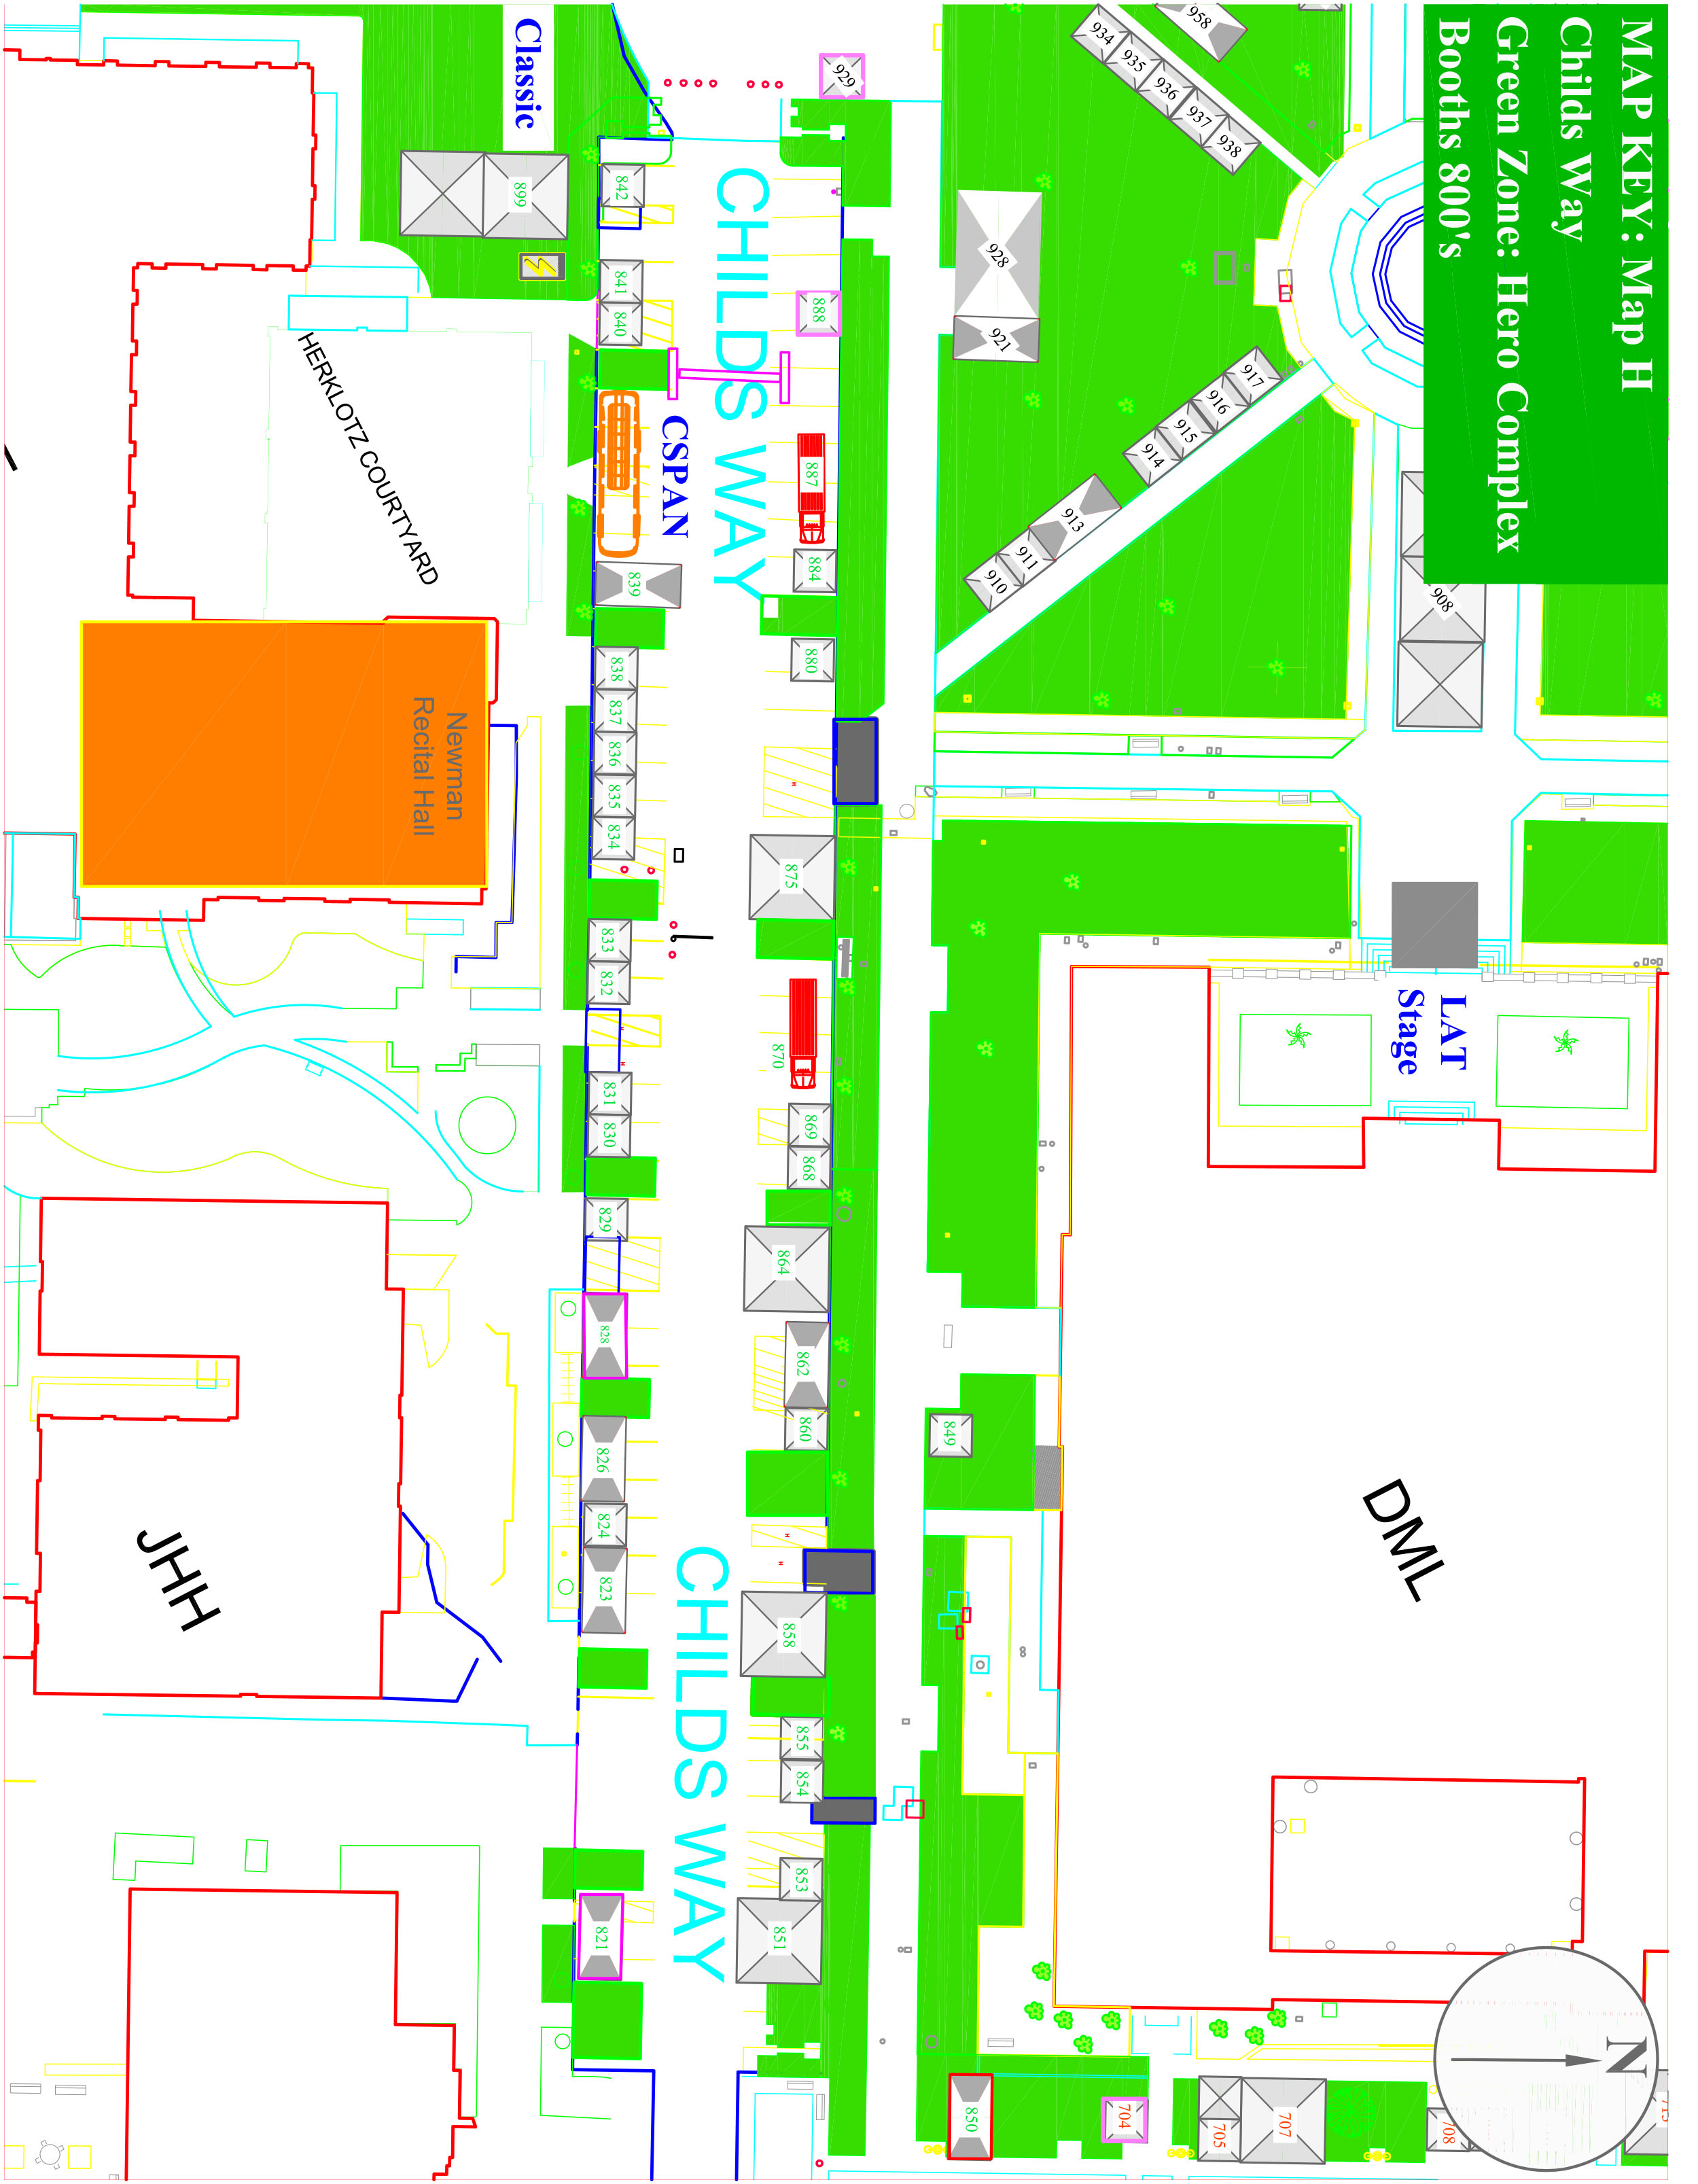 booth_map_823.jpg